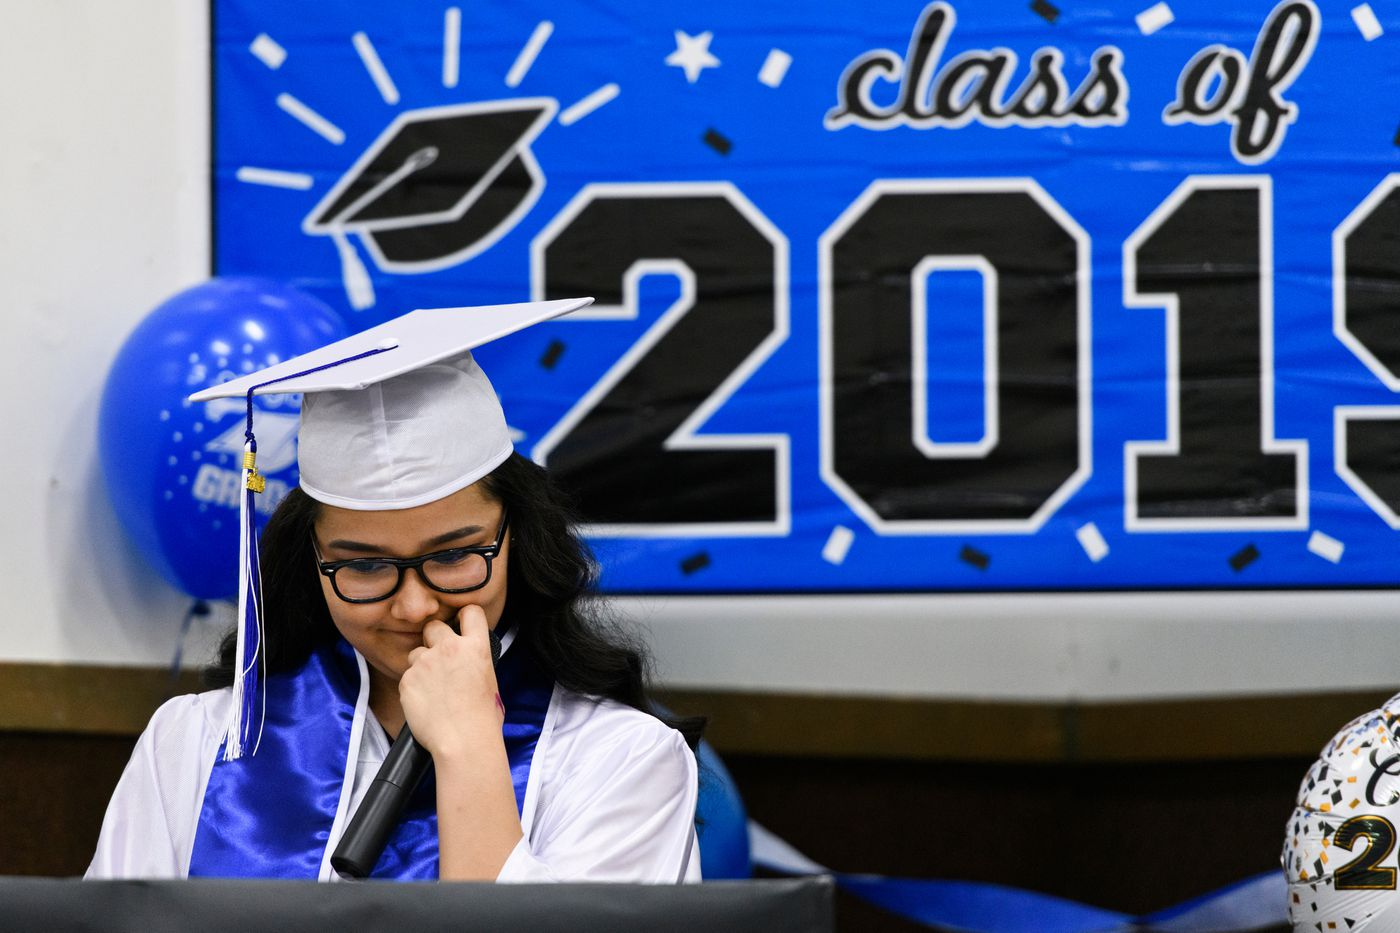 Denise Kalmakoff pauses while delivering her graduation speech on May 16. Kalmakoff thanked her mother and the school's small staff during the speech. (Marc Lester / ADN)